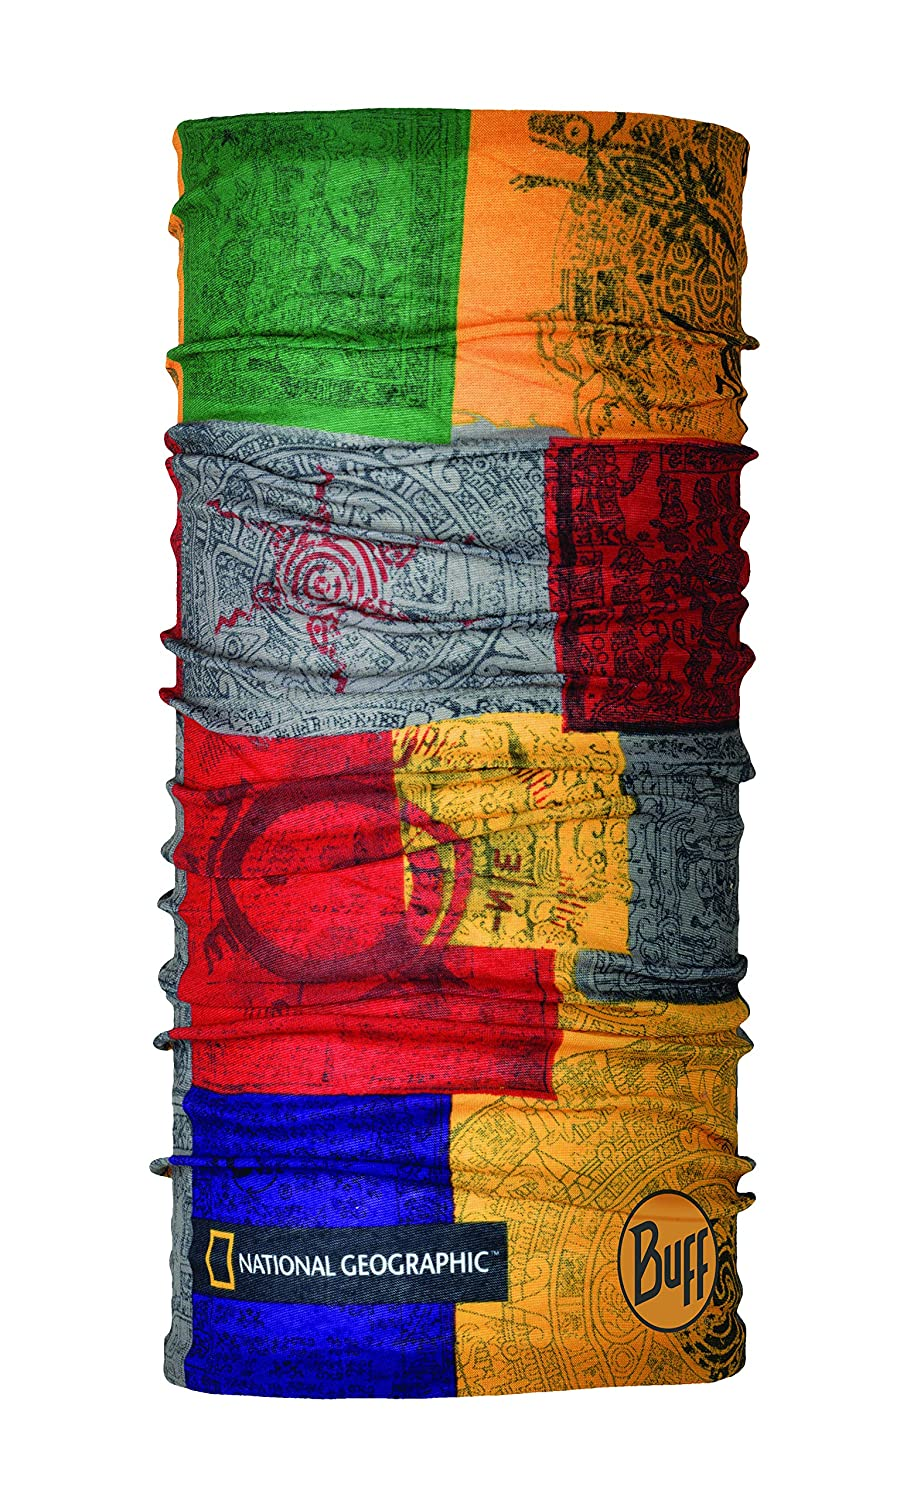 Buff Original National Geographic Schlauchschal, Temple Multi, One Size Original Buff S.A. 118258.555.10.00